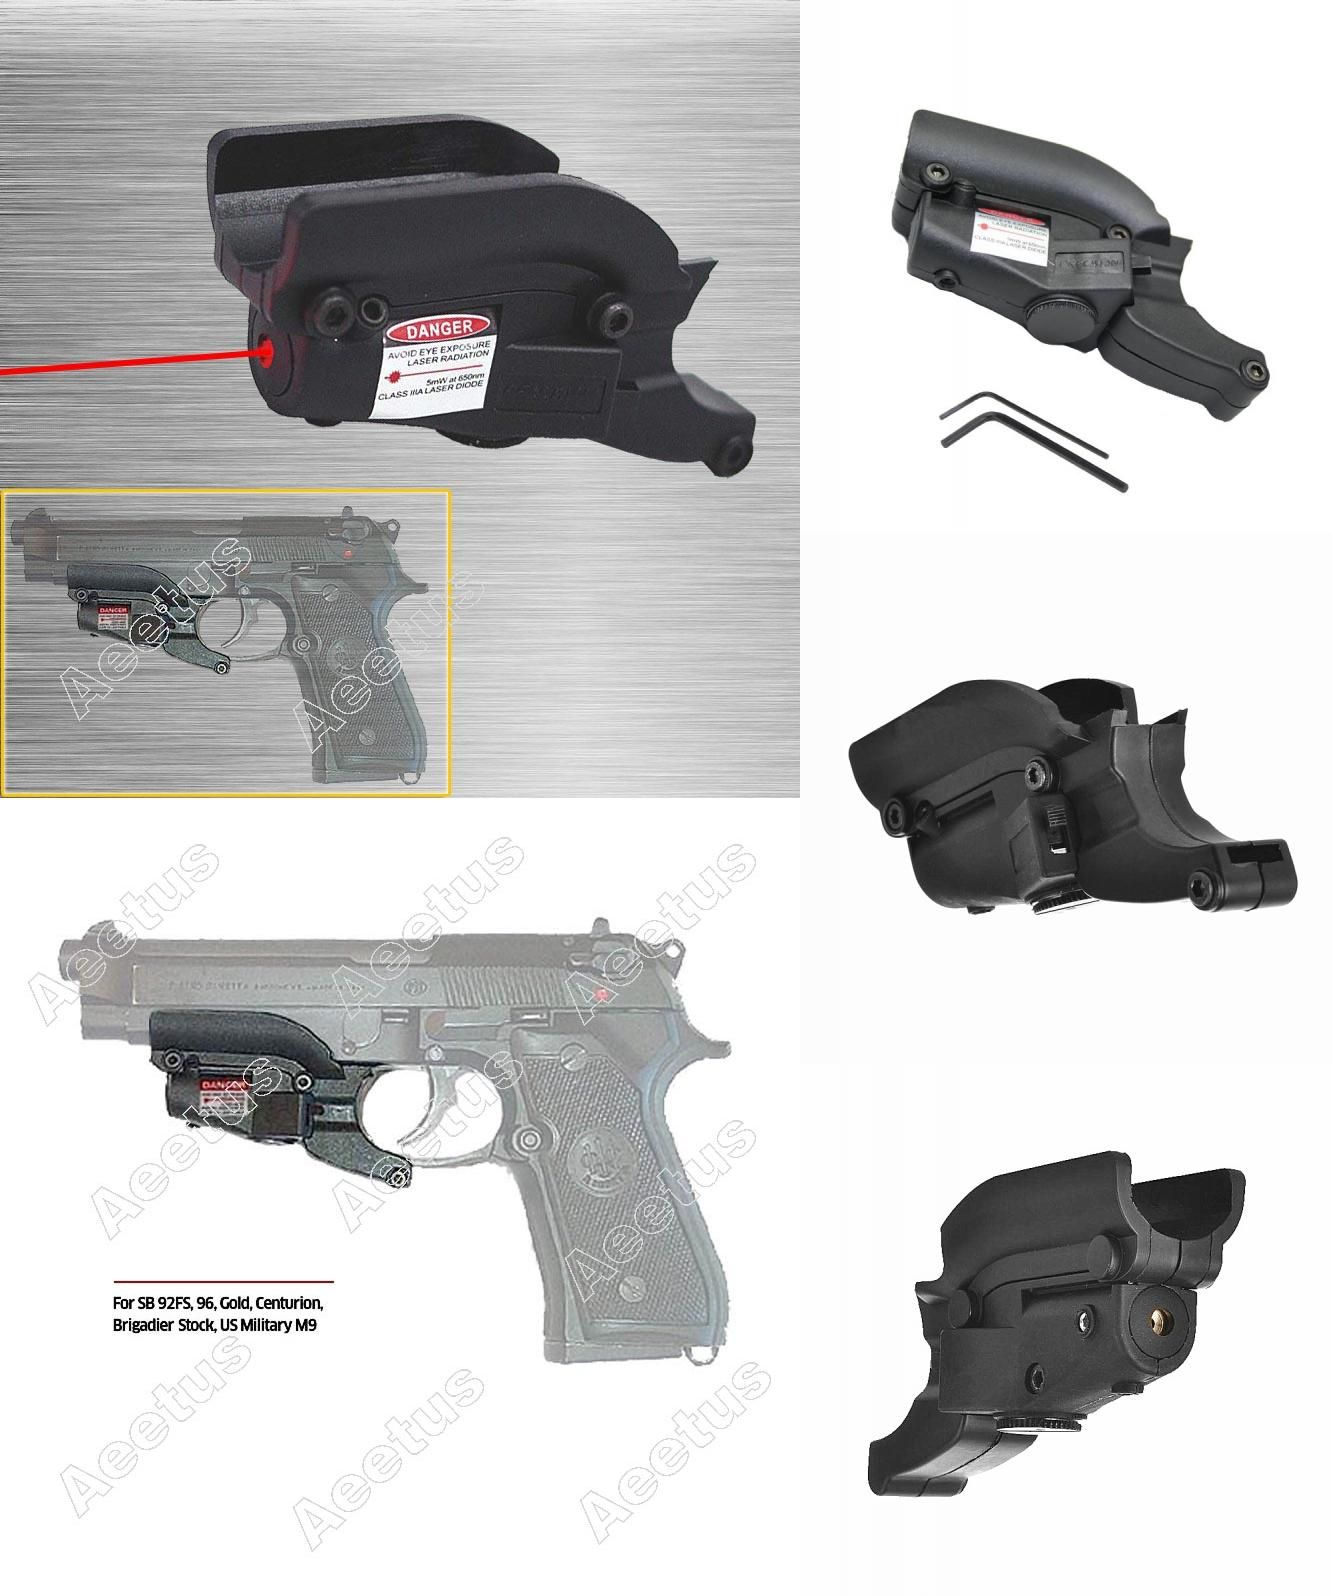 Visit to Buy] Red Laser Sight Device For M92 With Lateral Grooves